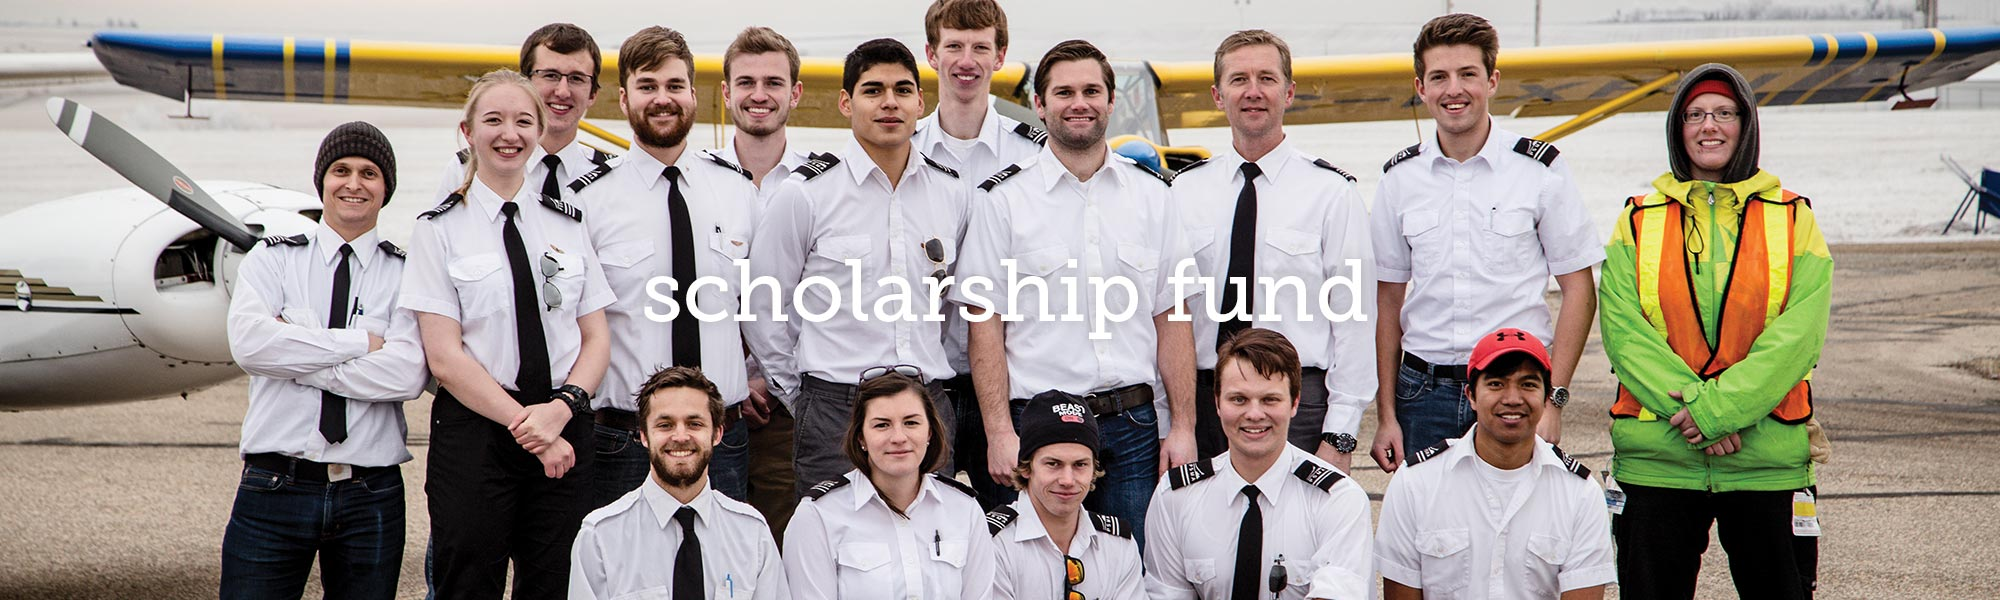 scholarship fund > MAF Canada